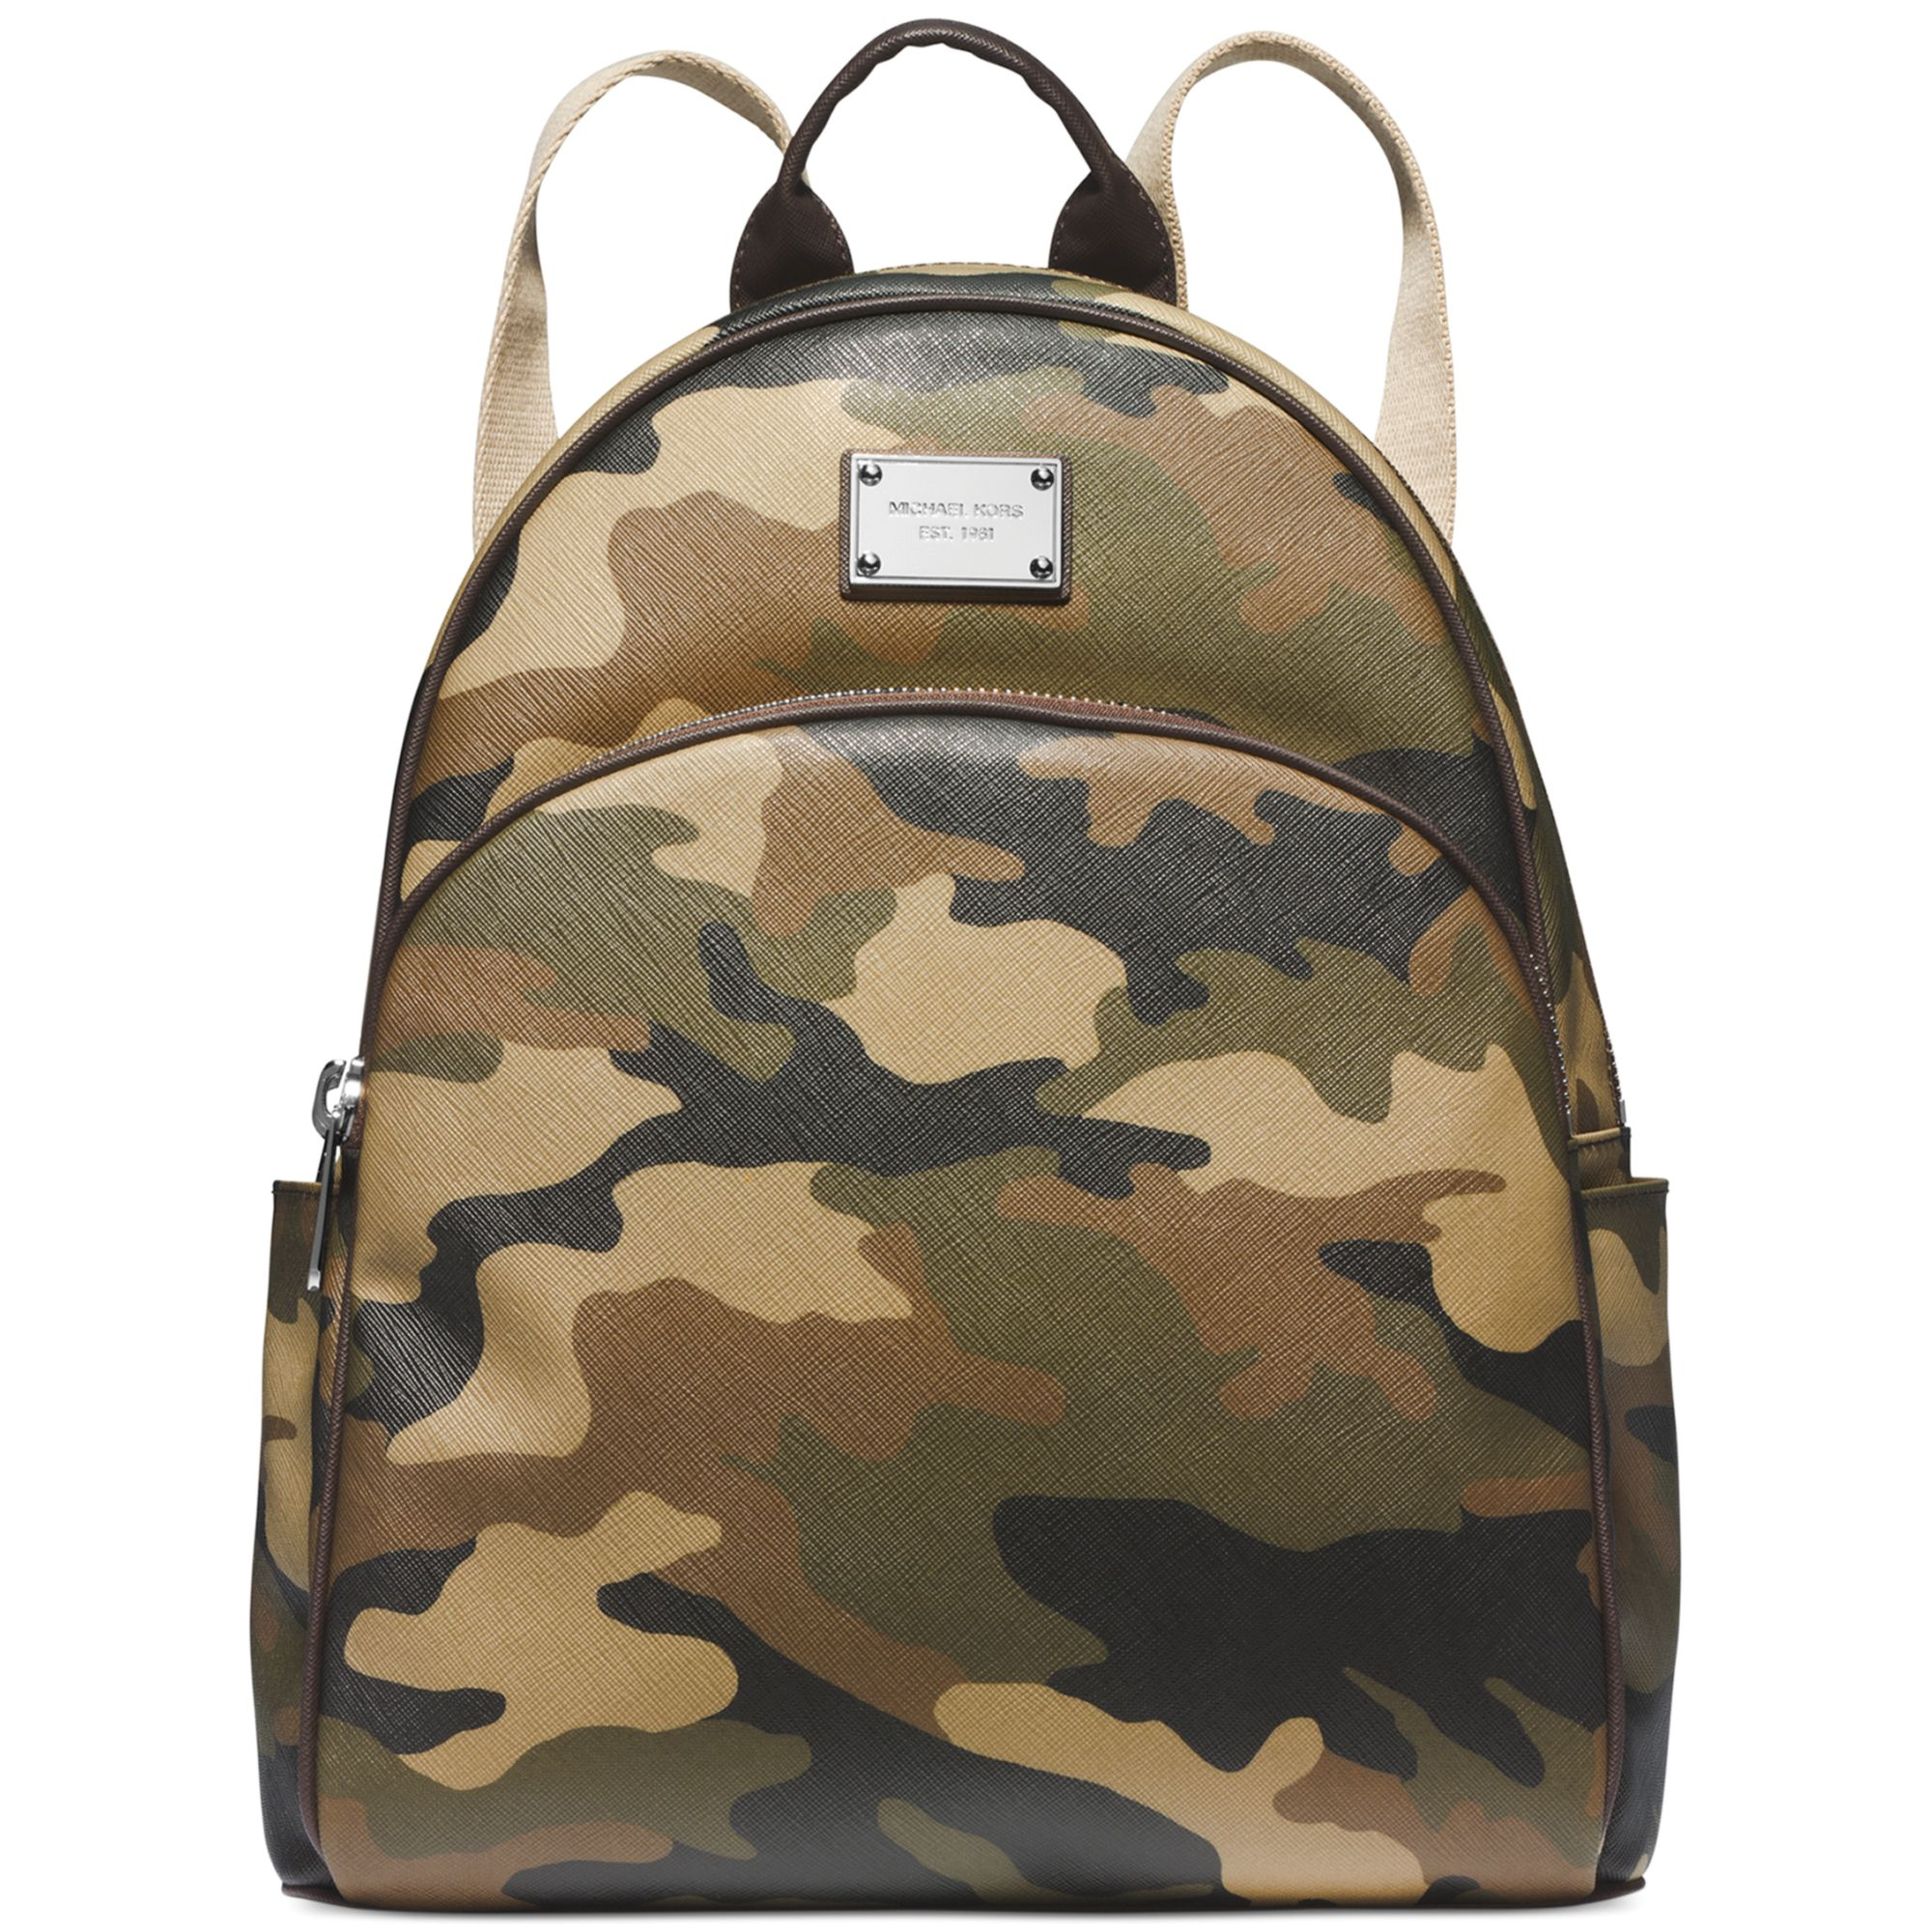 michael kors michael large camo backpack in green lyst. Black Bedroom Furniture Sets. Home Design Ideas